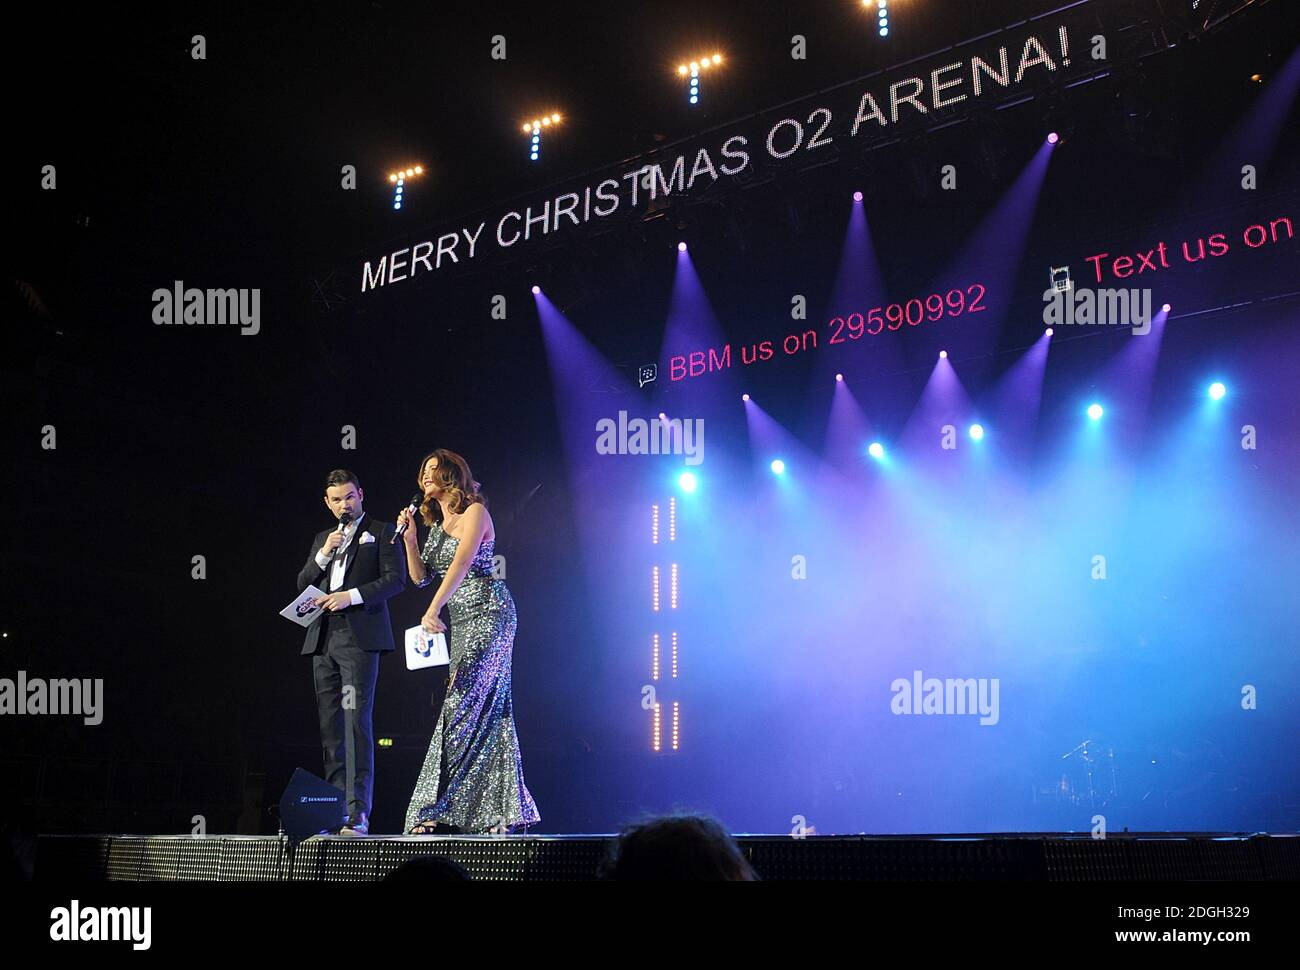 Dave Berry 2021 Christmas Dave Berry High Resolution Stock Photography And Images Alamy